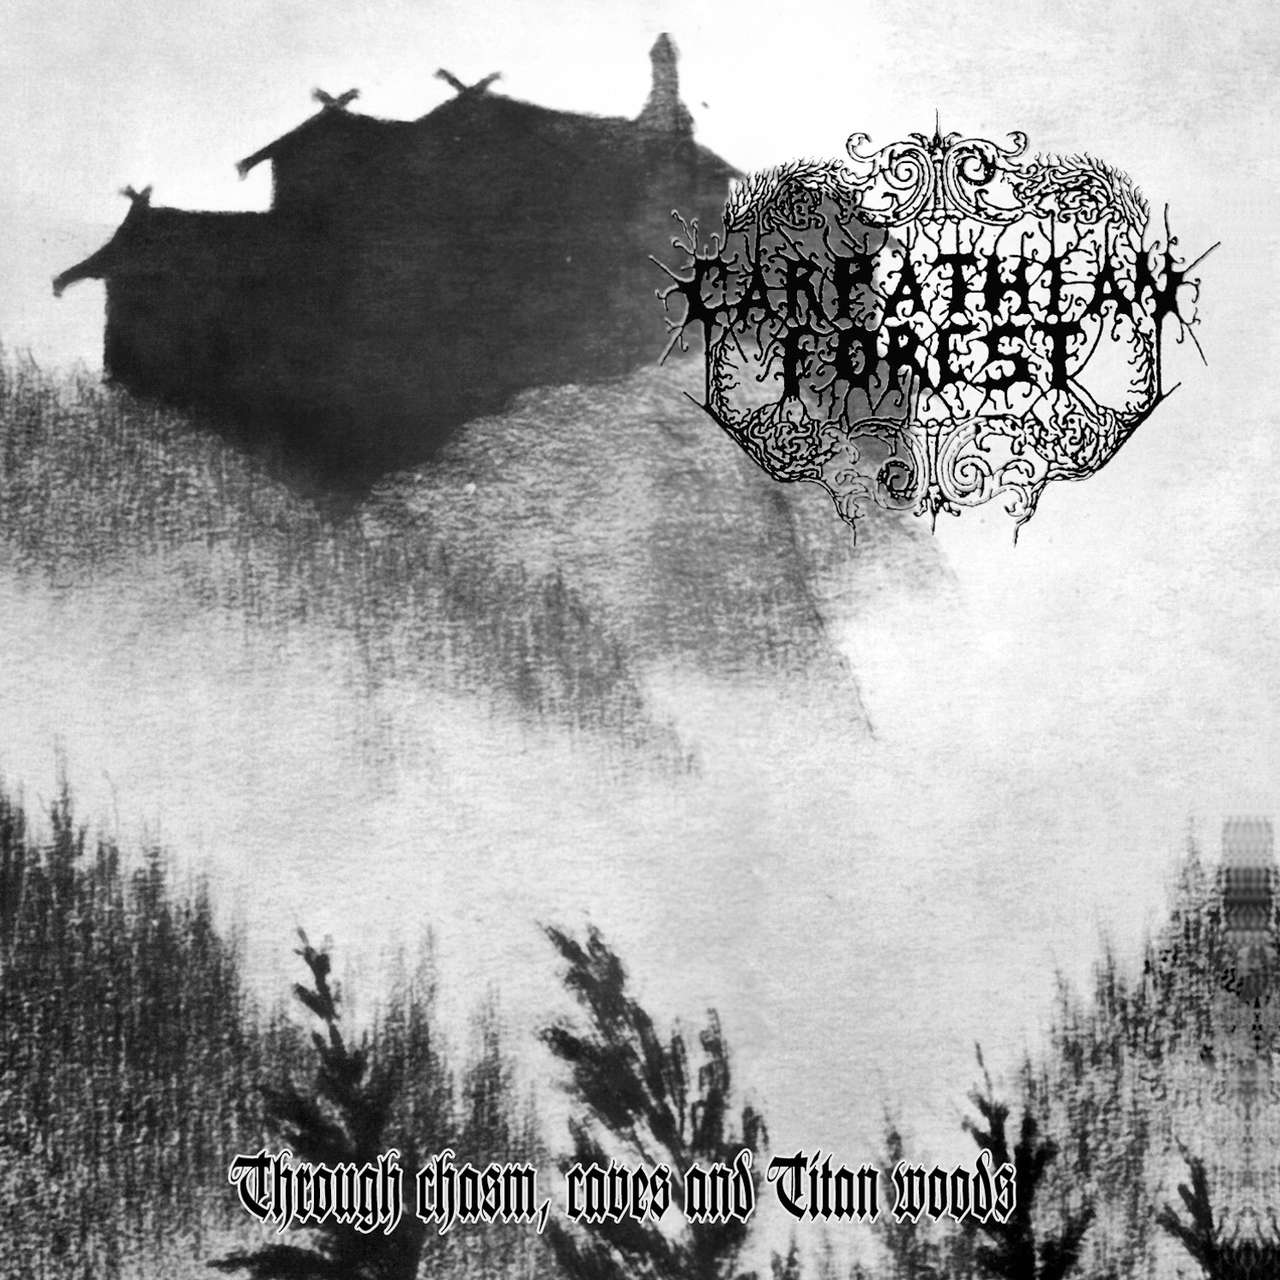 Carpathian Forest - Through Chasm, Caves and Titan Woods (2013 Reissue) (LP)